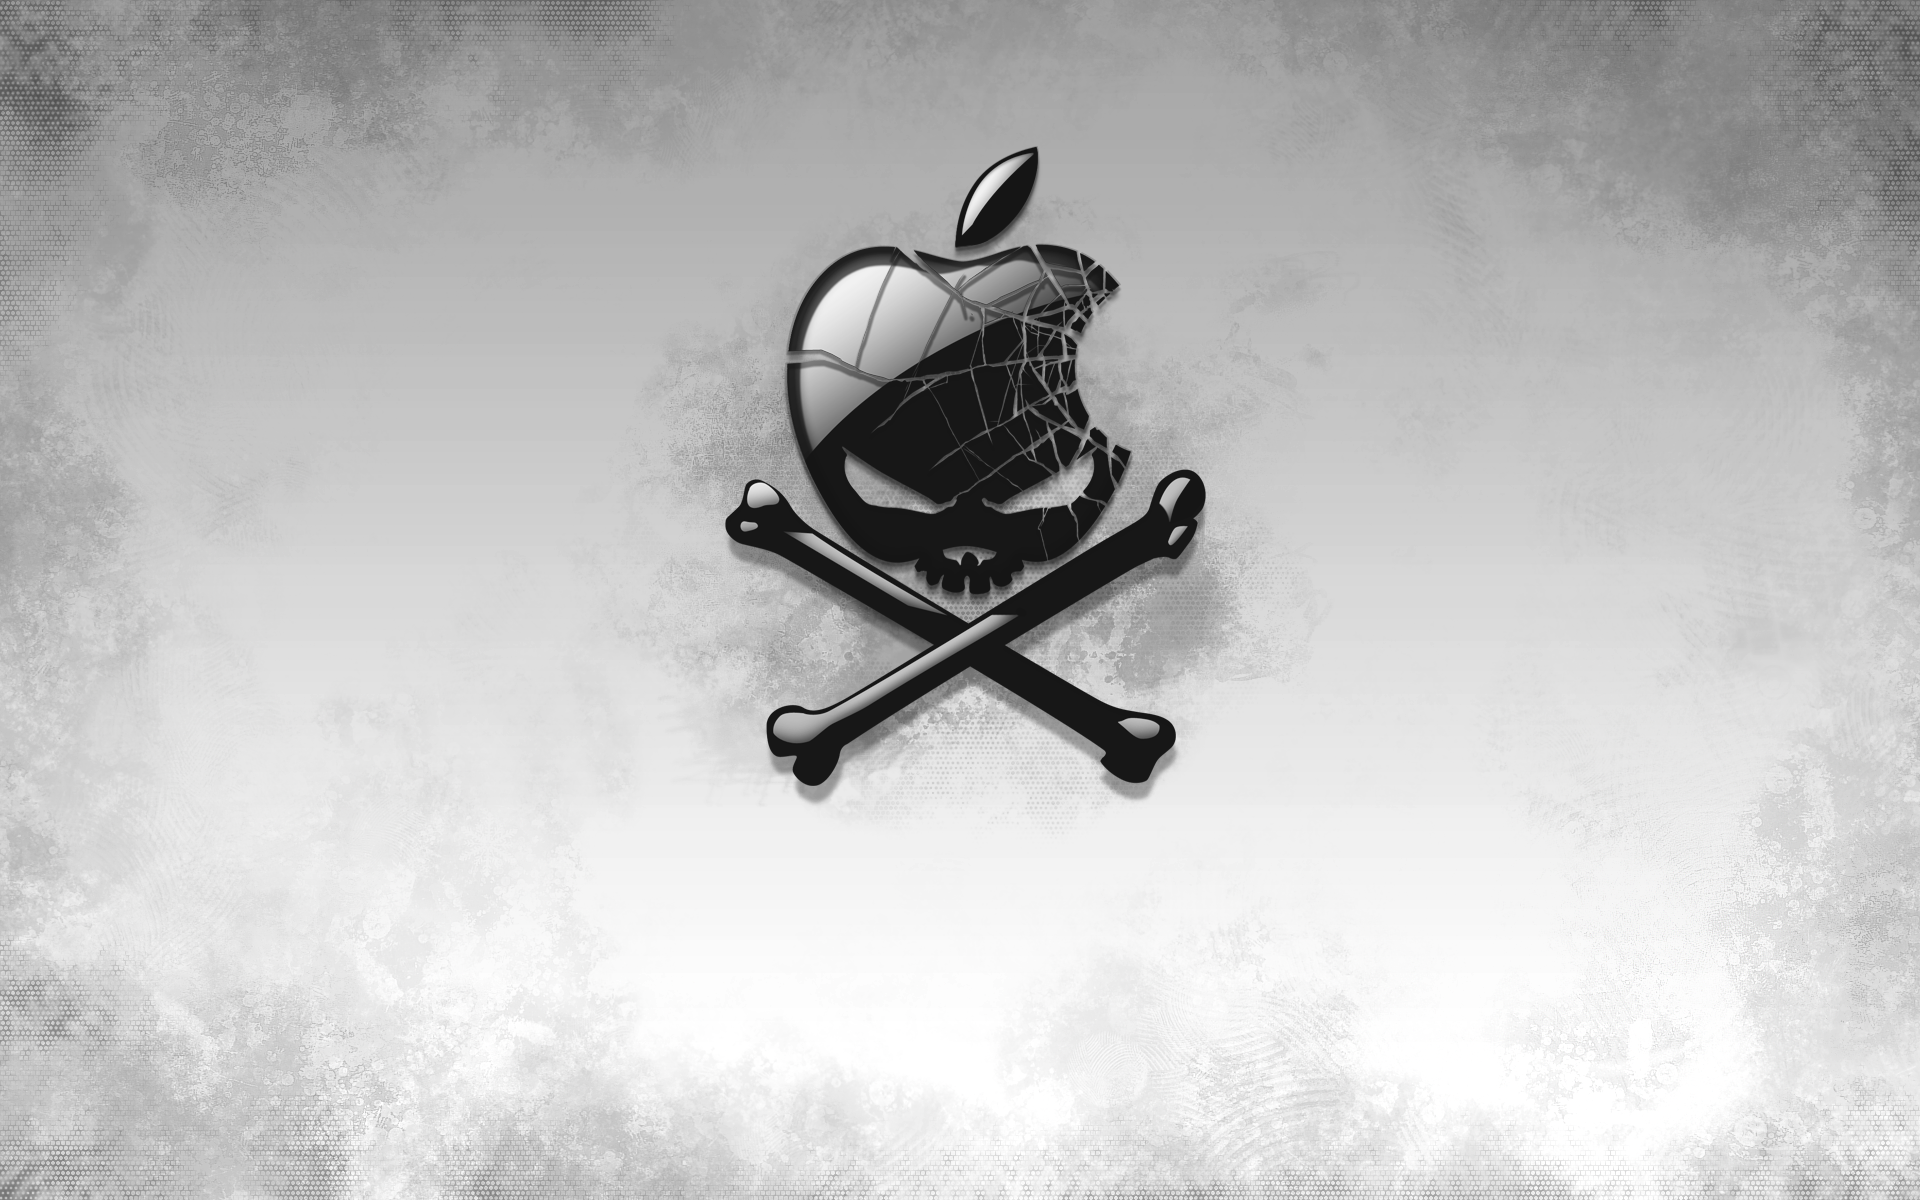 Cool iMac Backgrounds Group (73+)